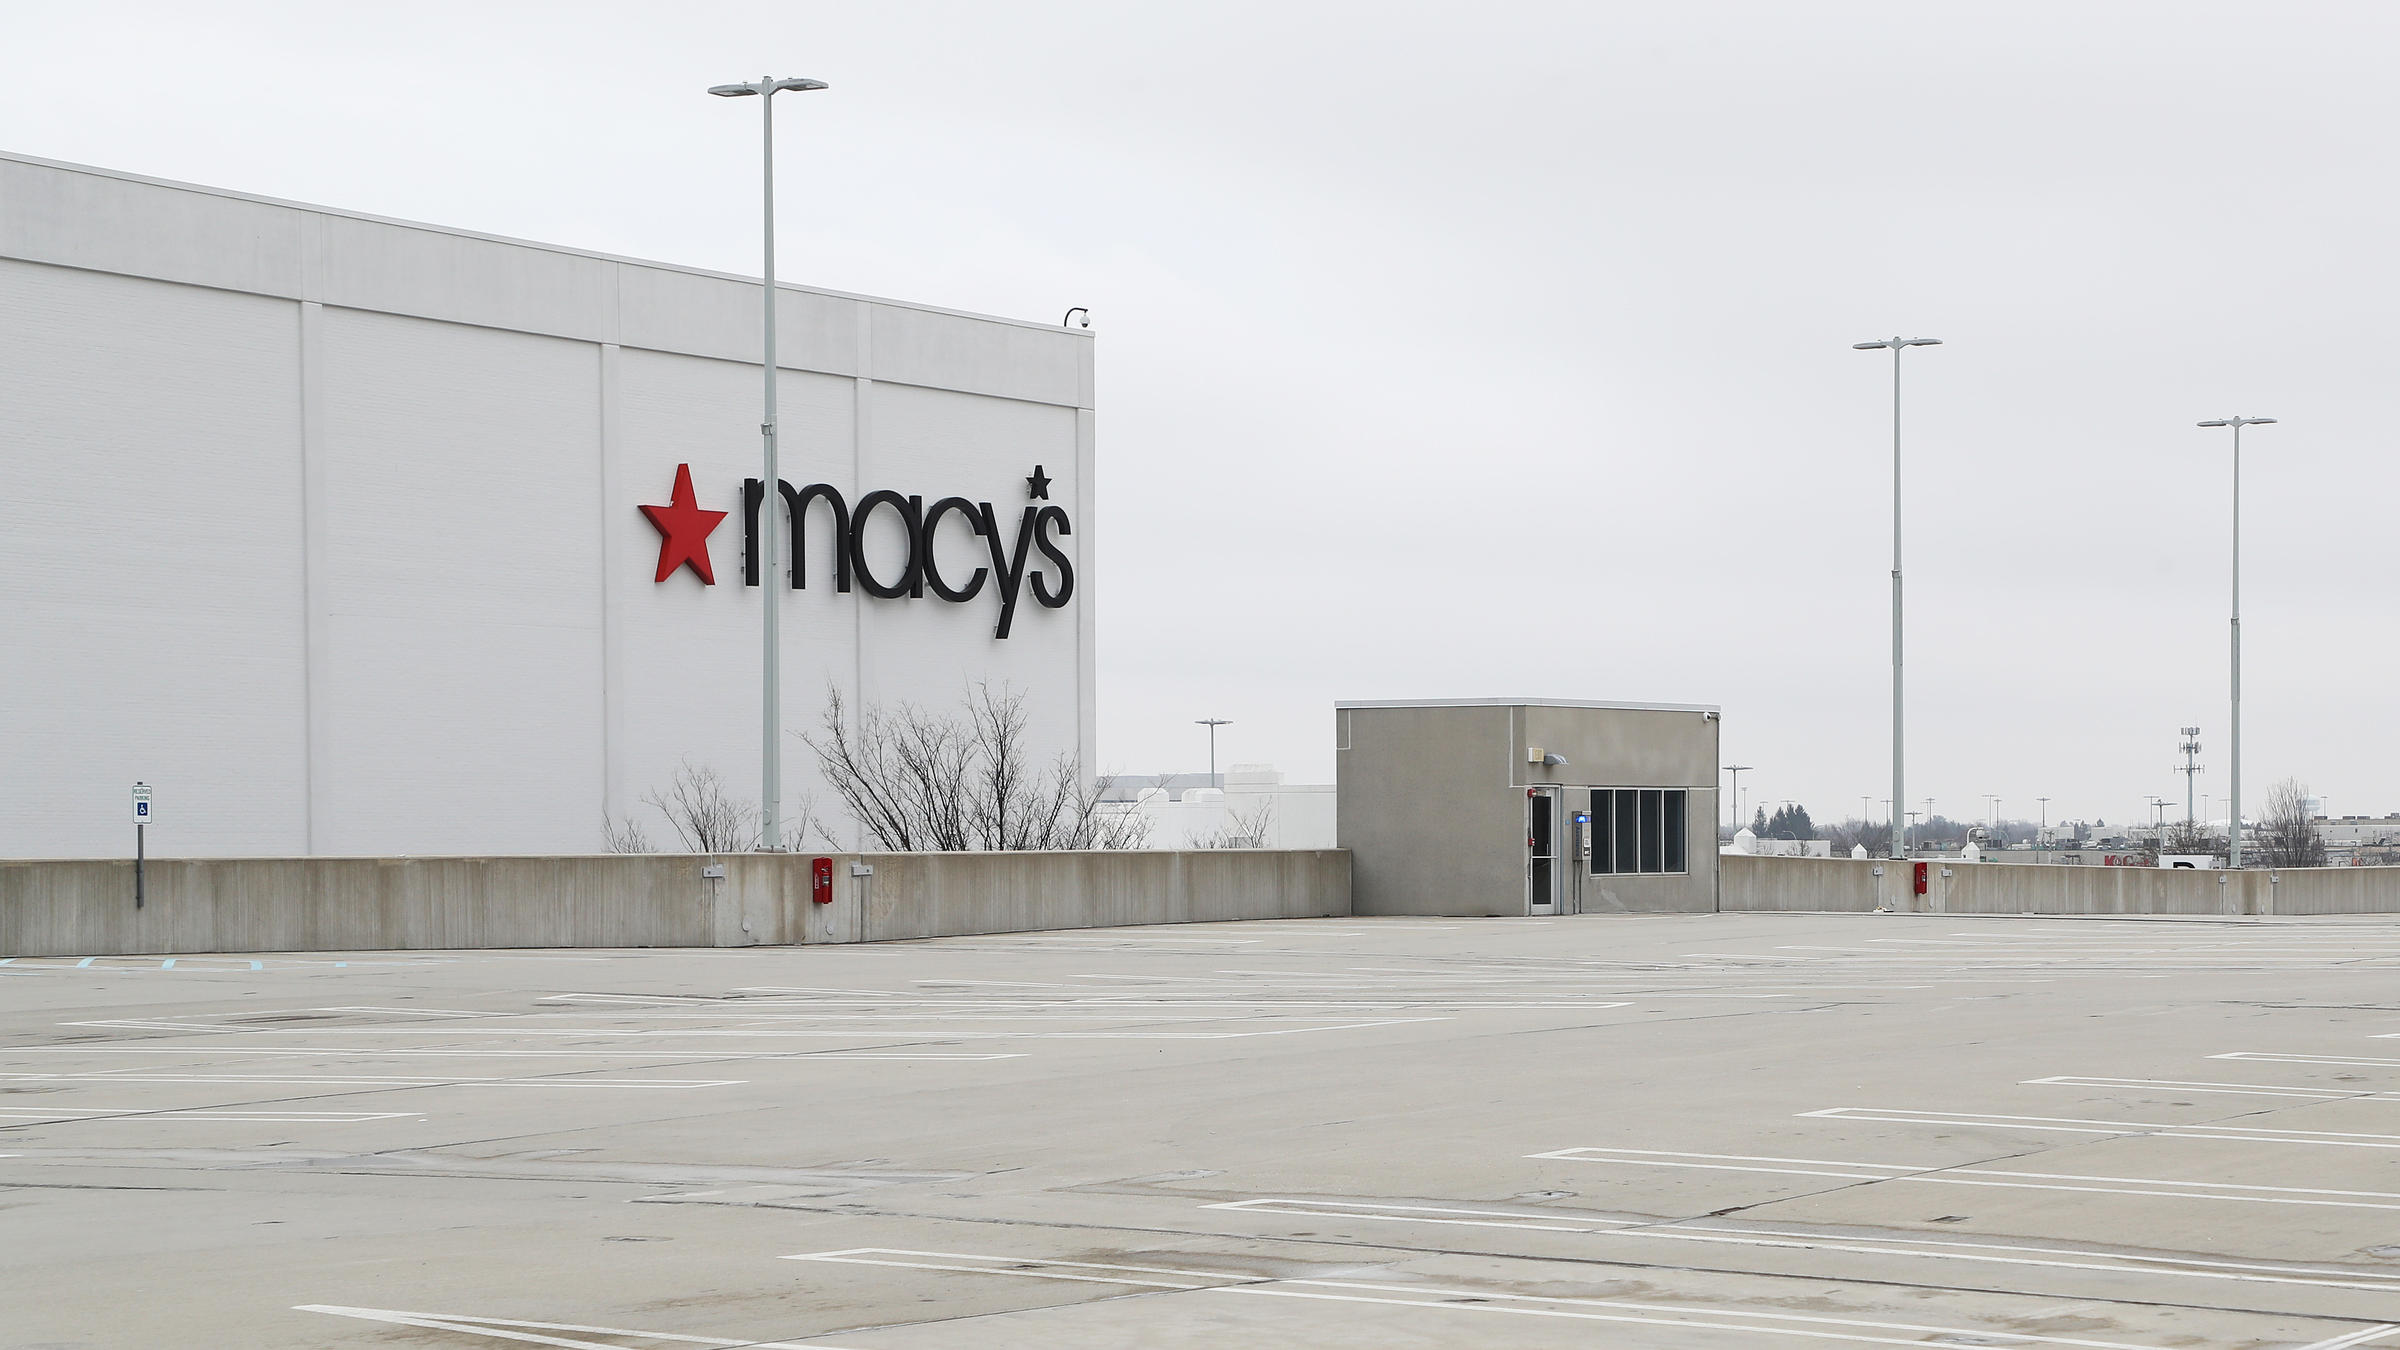 Macy's to furlough most of its 130K workers amid coronavirus shutdown